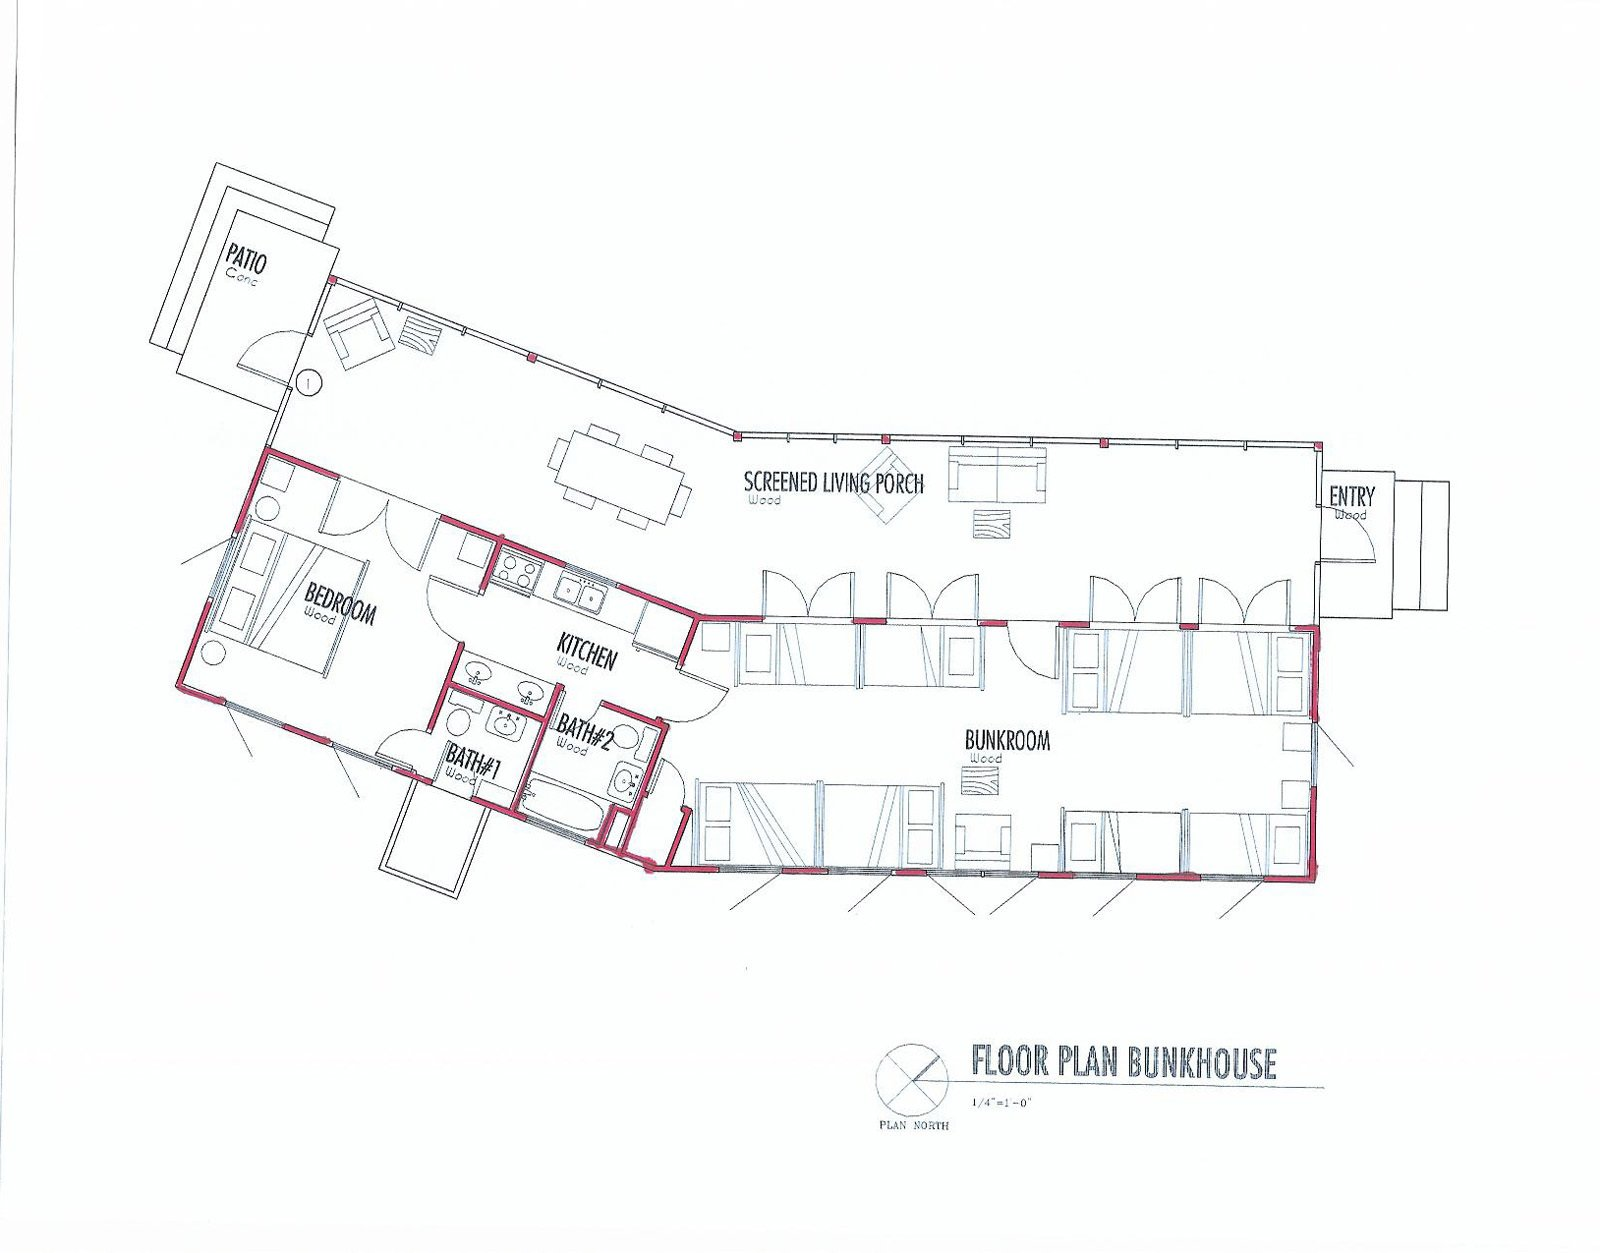 The floor plan exemplifies the thin proportions of the bunkhouse, and its 30-degree turn. The bunkroom measures just over 800 square feet, and the screen porch, around 600. Image courtesy Henry Panton.  Texas Bunkhouse by Erika Heet